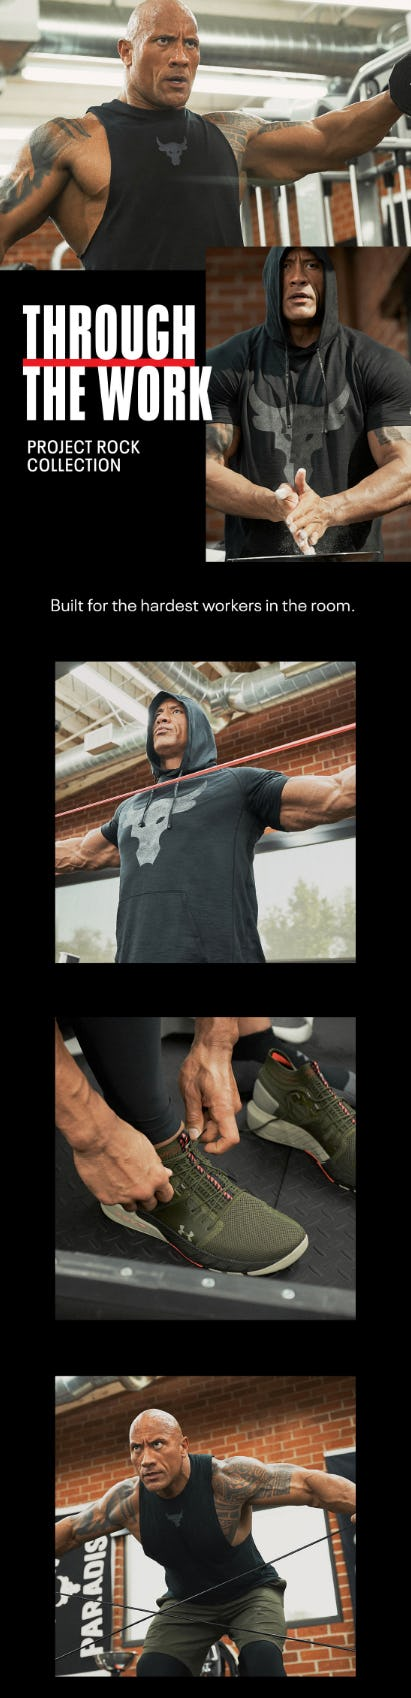 The Project Rock Collection is Here from Under Armour